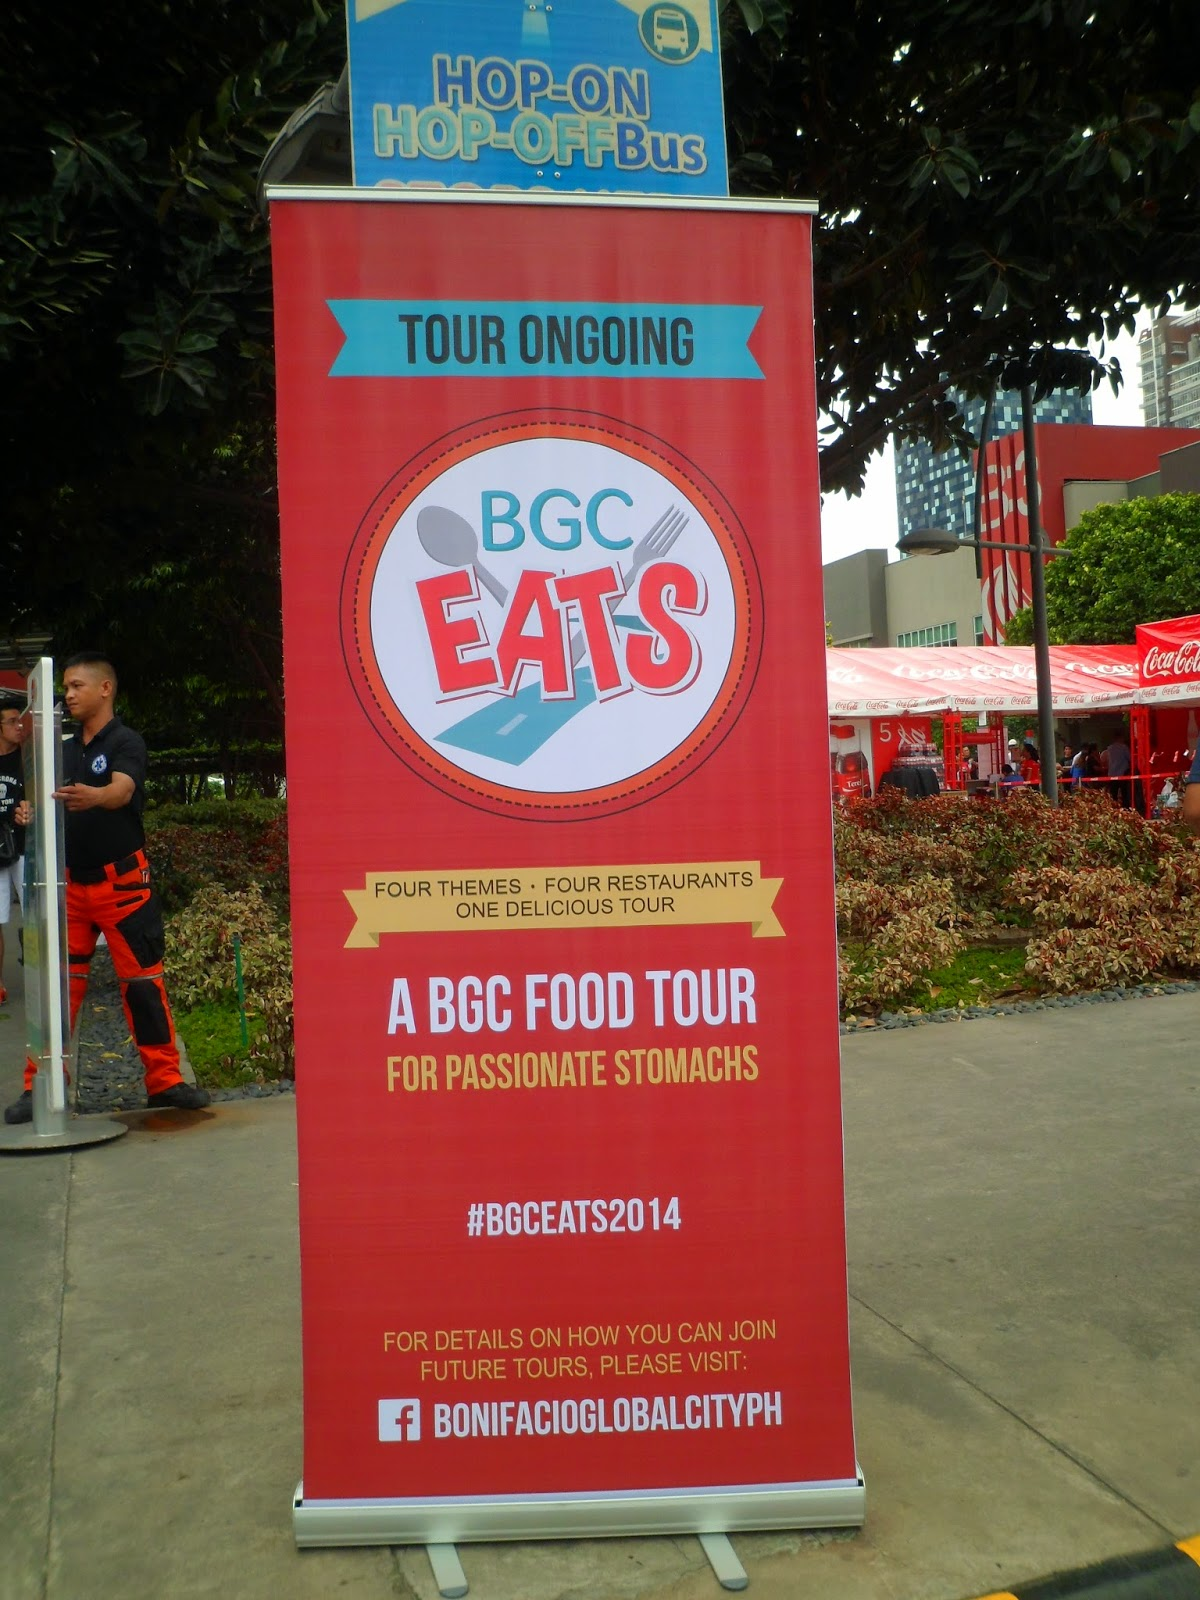 A BGC Food Tour For Passionate Stomachs